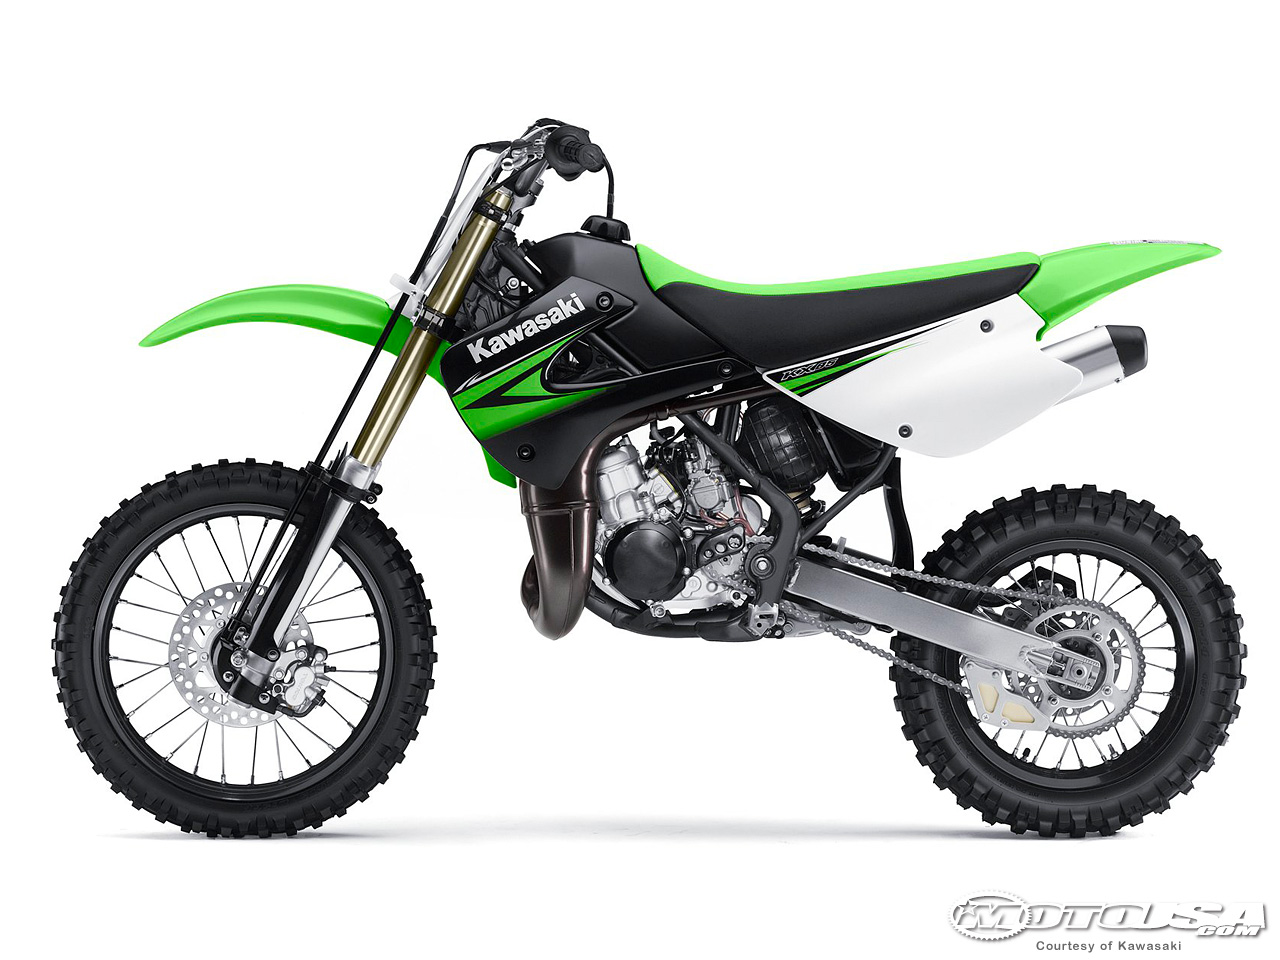 new motorcycle review motocross kawasaki kx85 2011 review and pictures. Black Bedroom Furniture Sets. Home Design Ideas